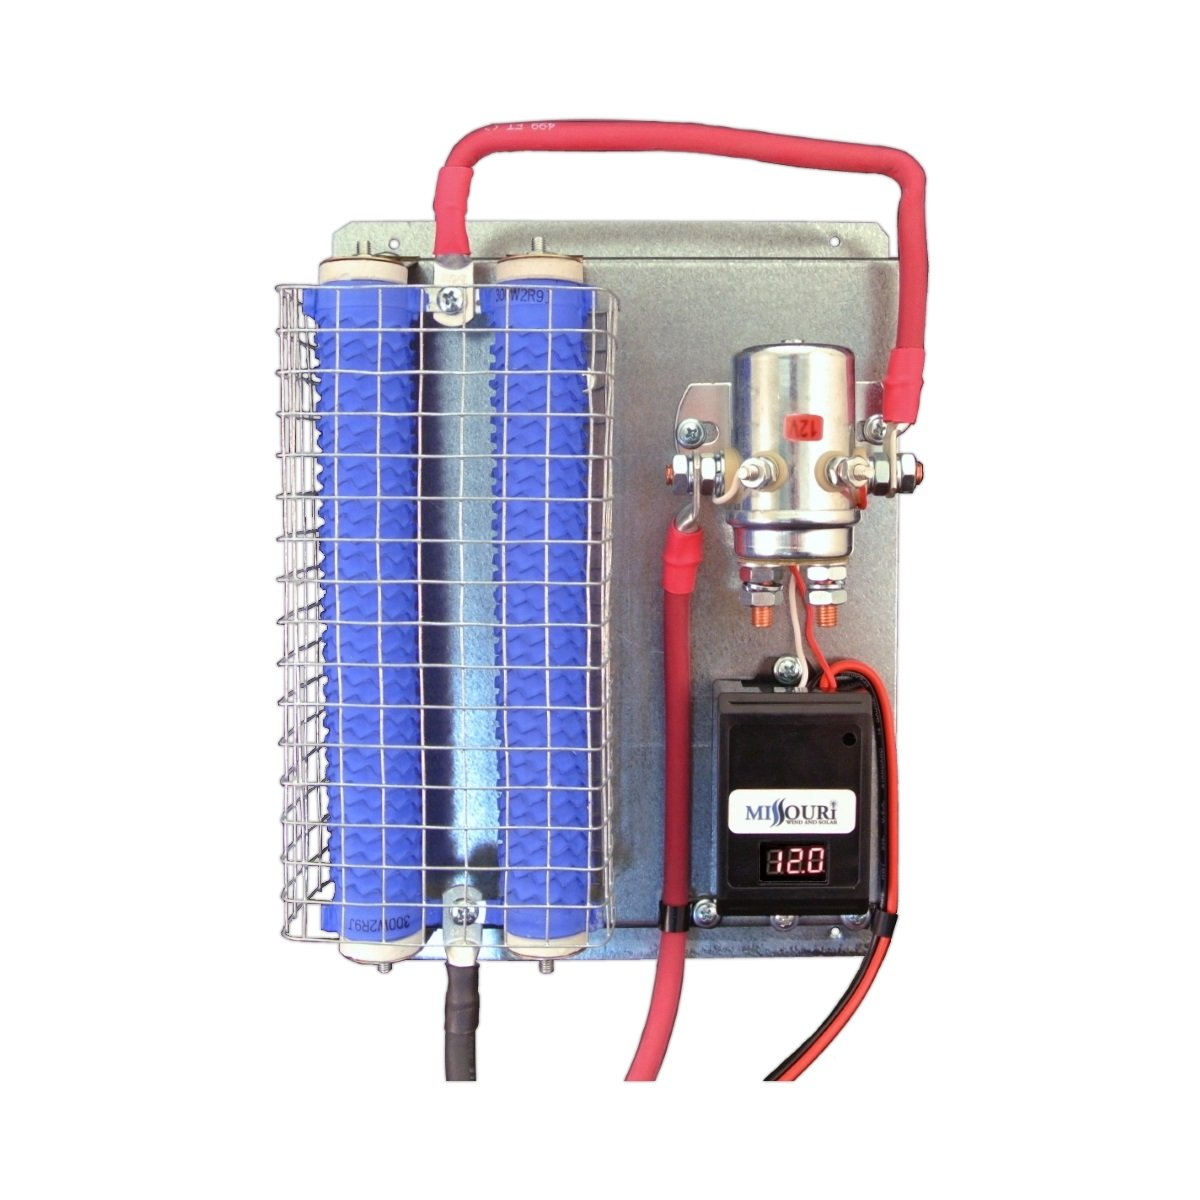 12 Volt Wind and Solar Charge Controller w LED Display 600 Watt Divert Load